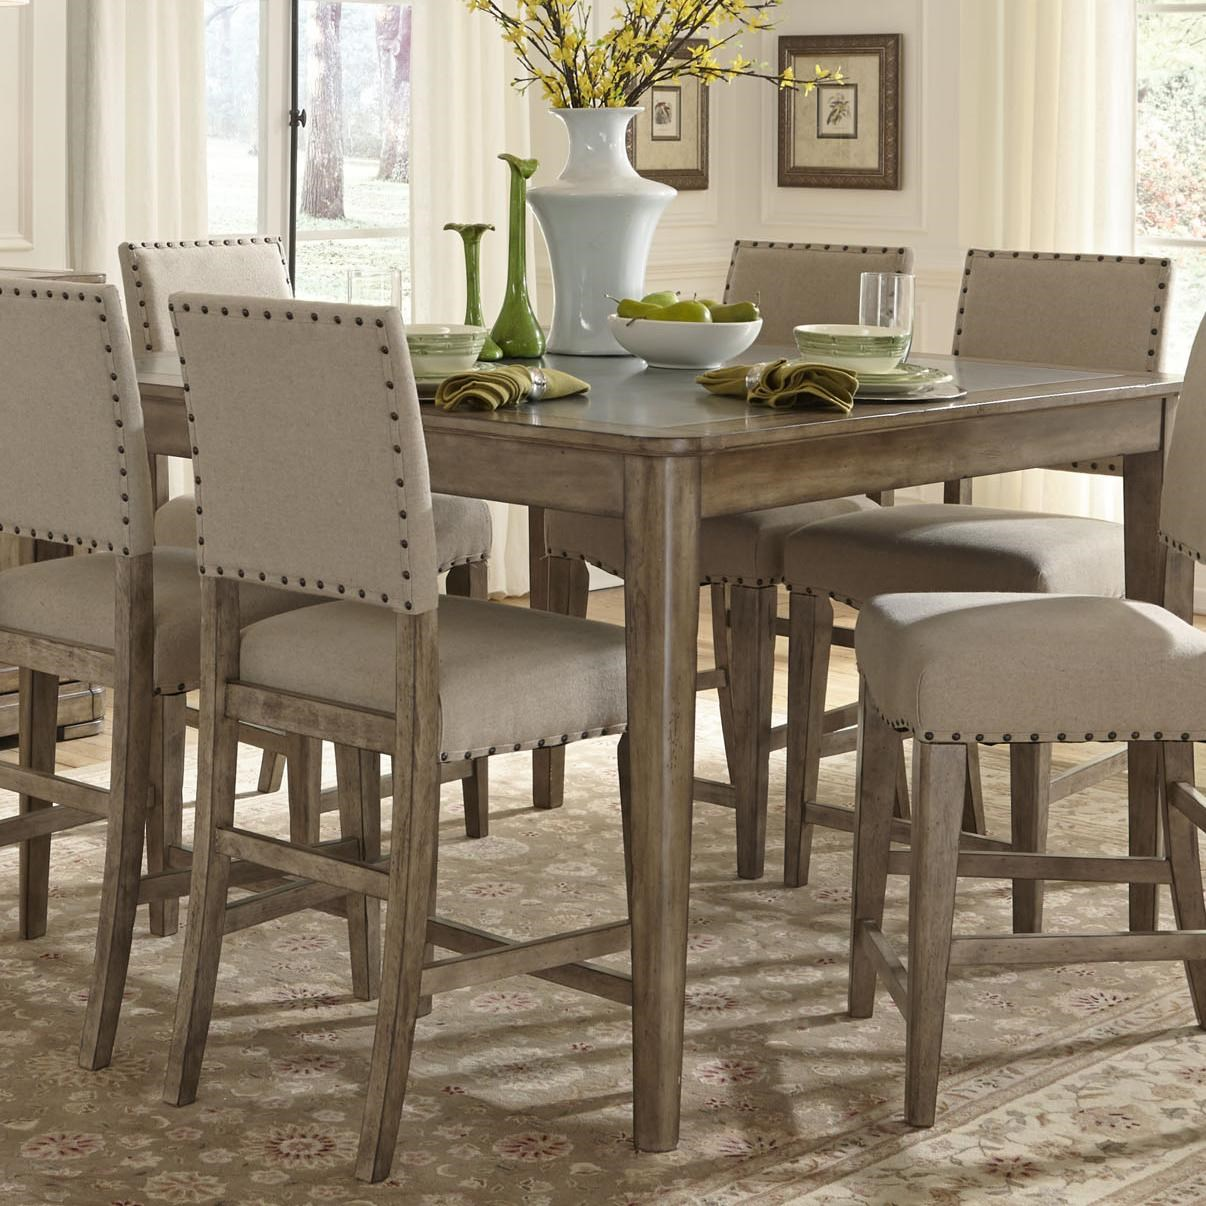 Liberty Furniture Weatherford Rustic Casual Gathering Table With Concrete  Insert